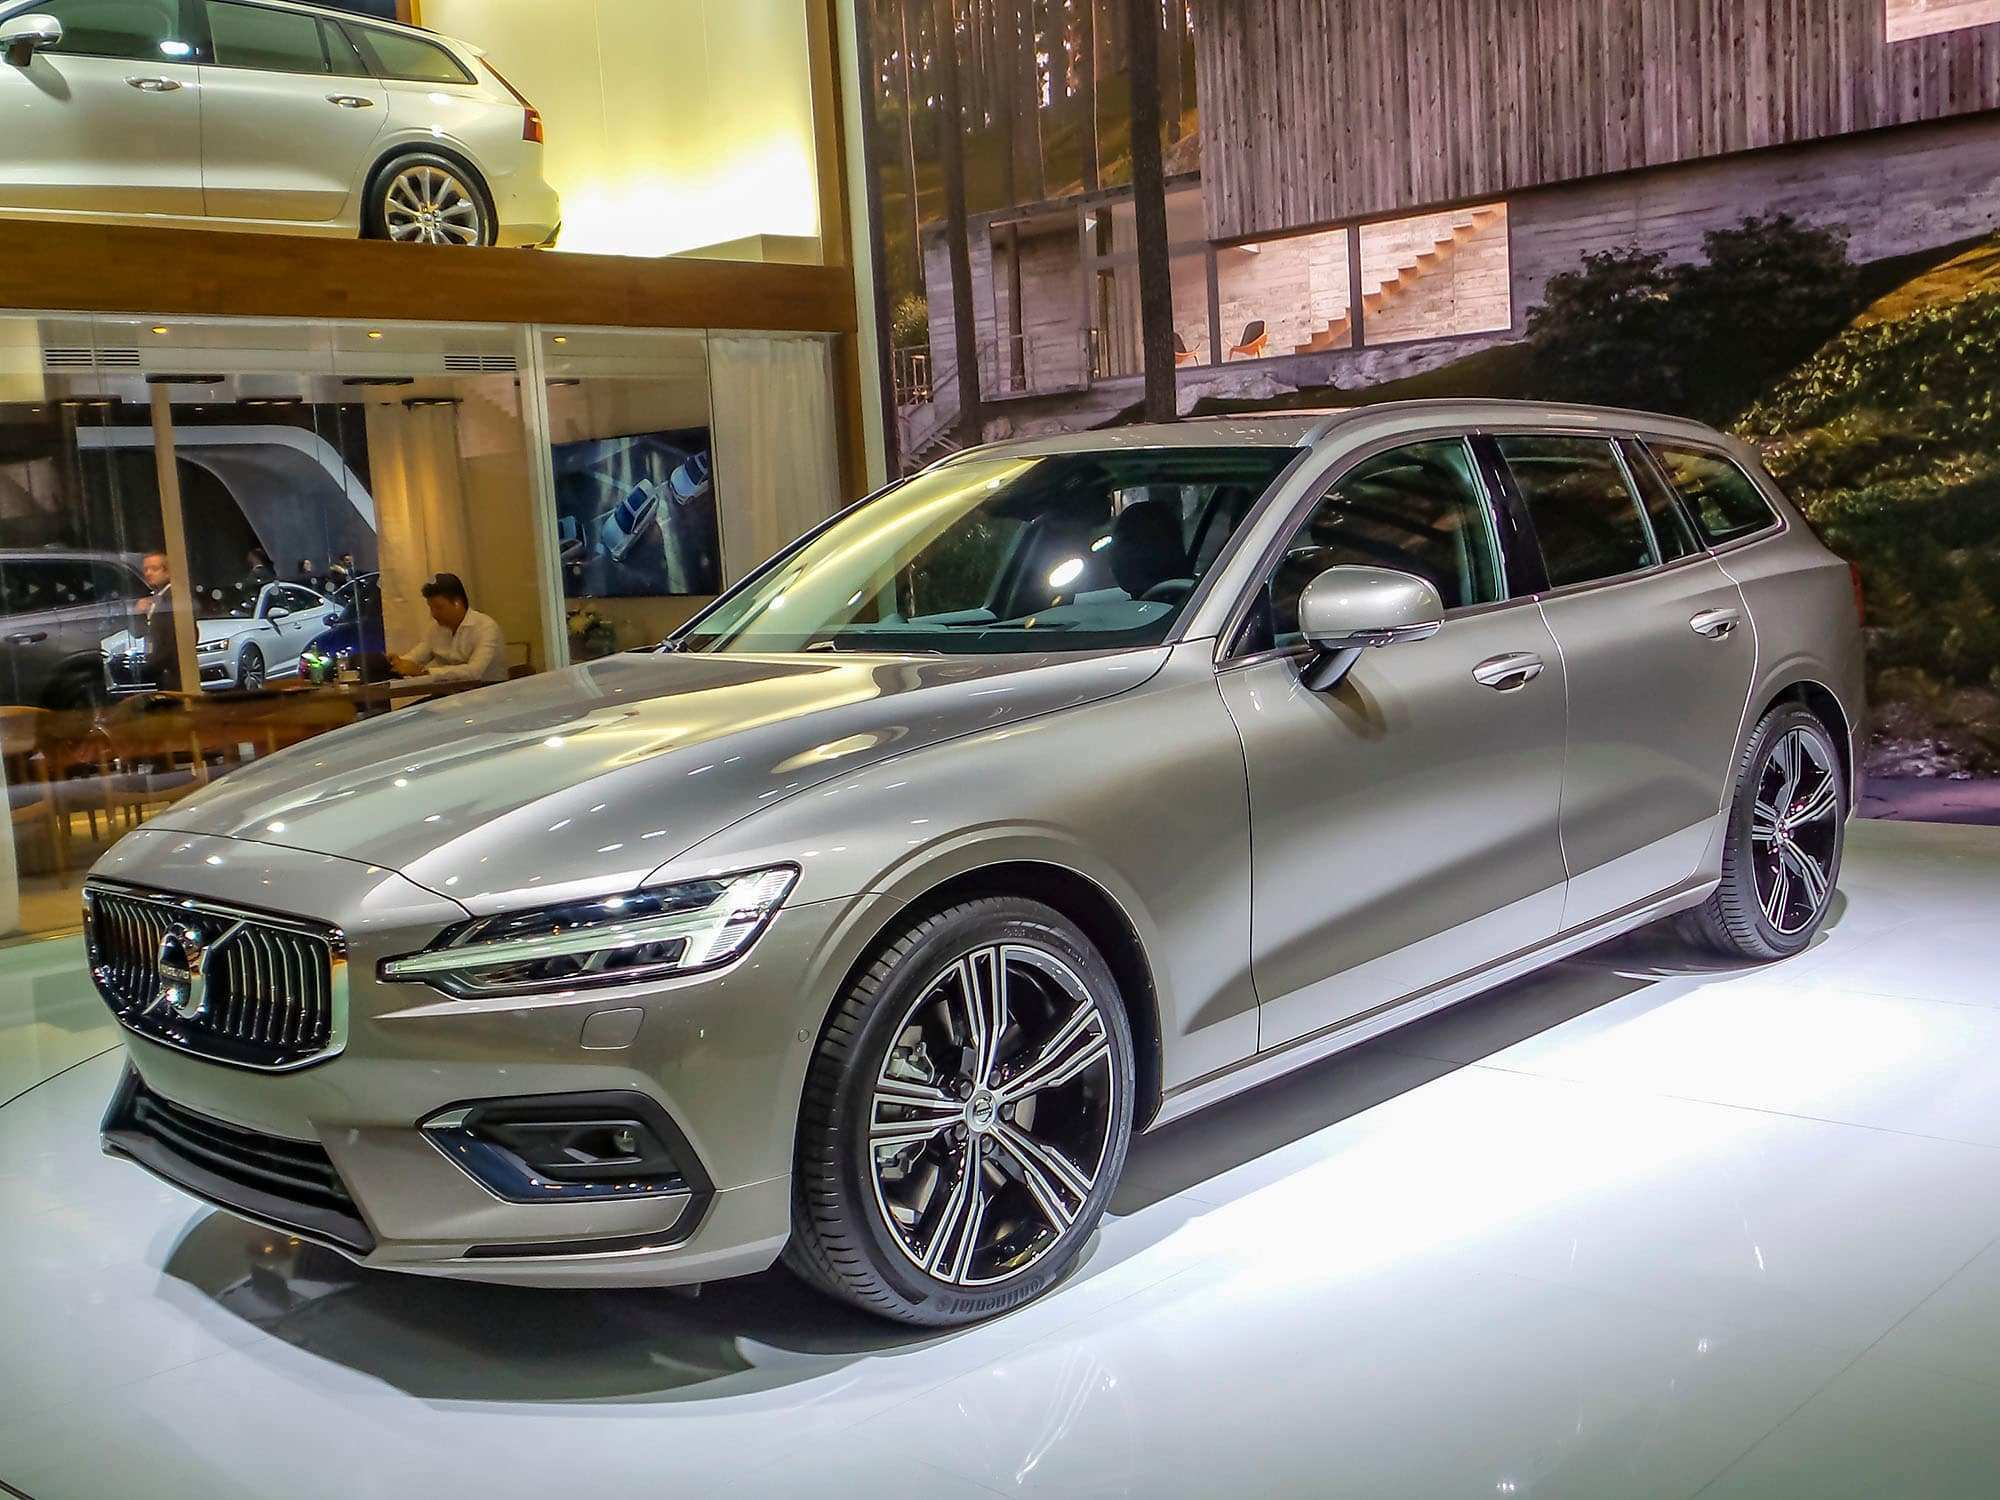 43 All New Volvo Wagon V60 2019 Price And Release Date Exterior with Volvo Wagon V60 2019 Price And Release Date